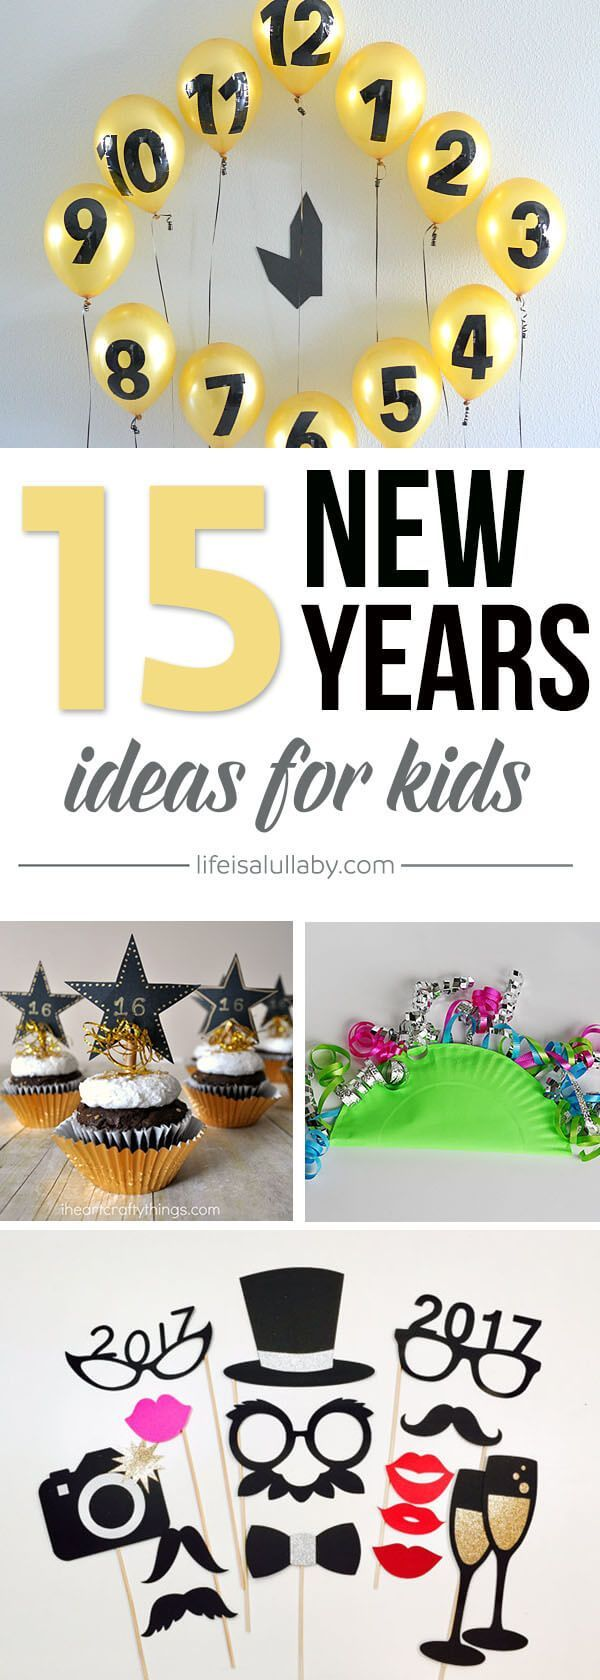 171 best New Year\'s Ideas images on Pinterest | New years eve ...